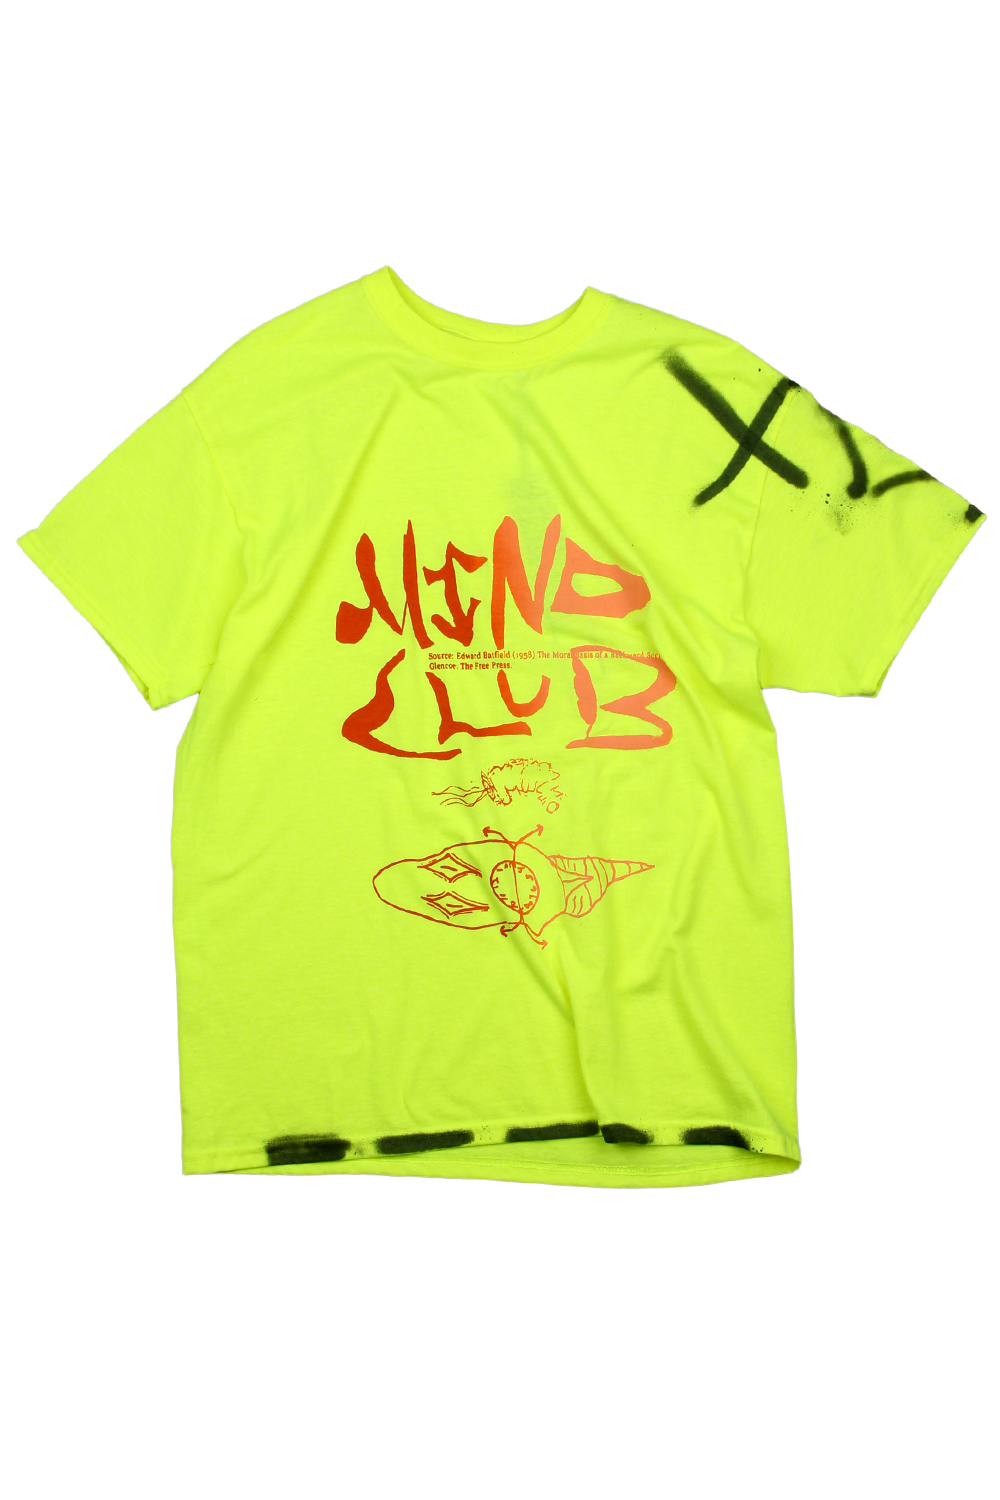 [MIND CLUB] MIND CLUB T-SHIRT neon